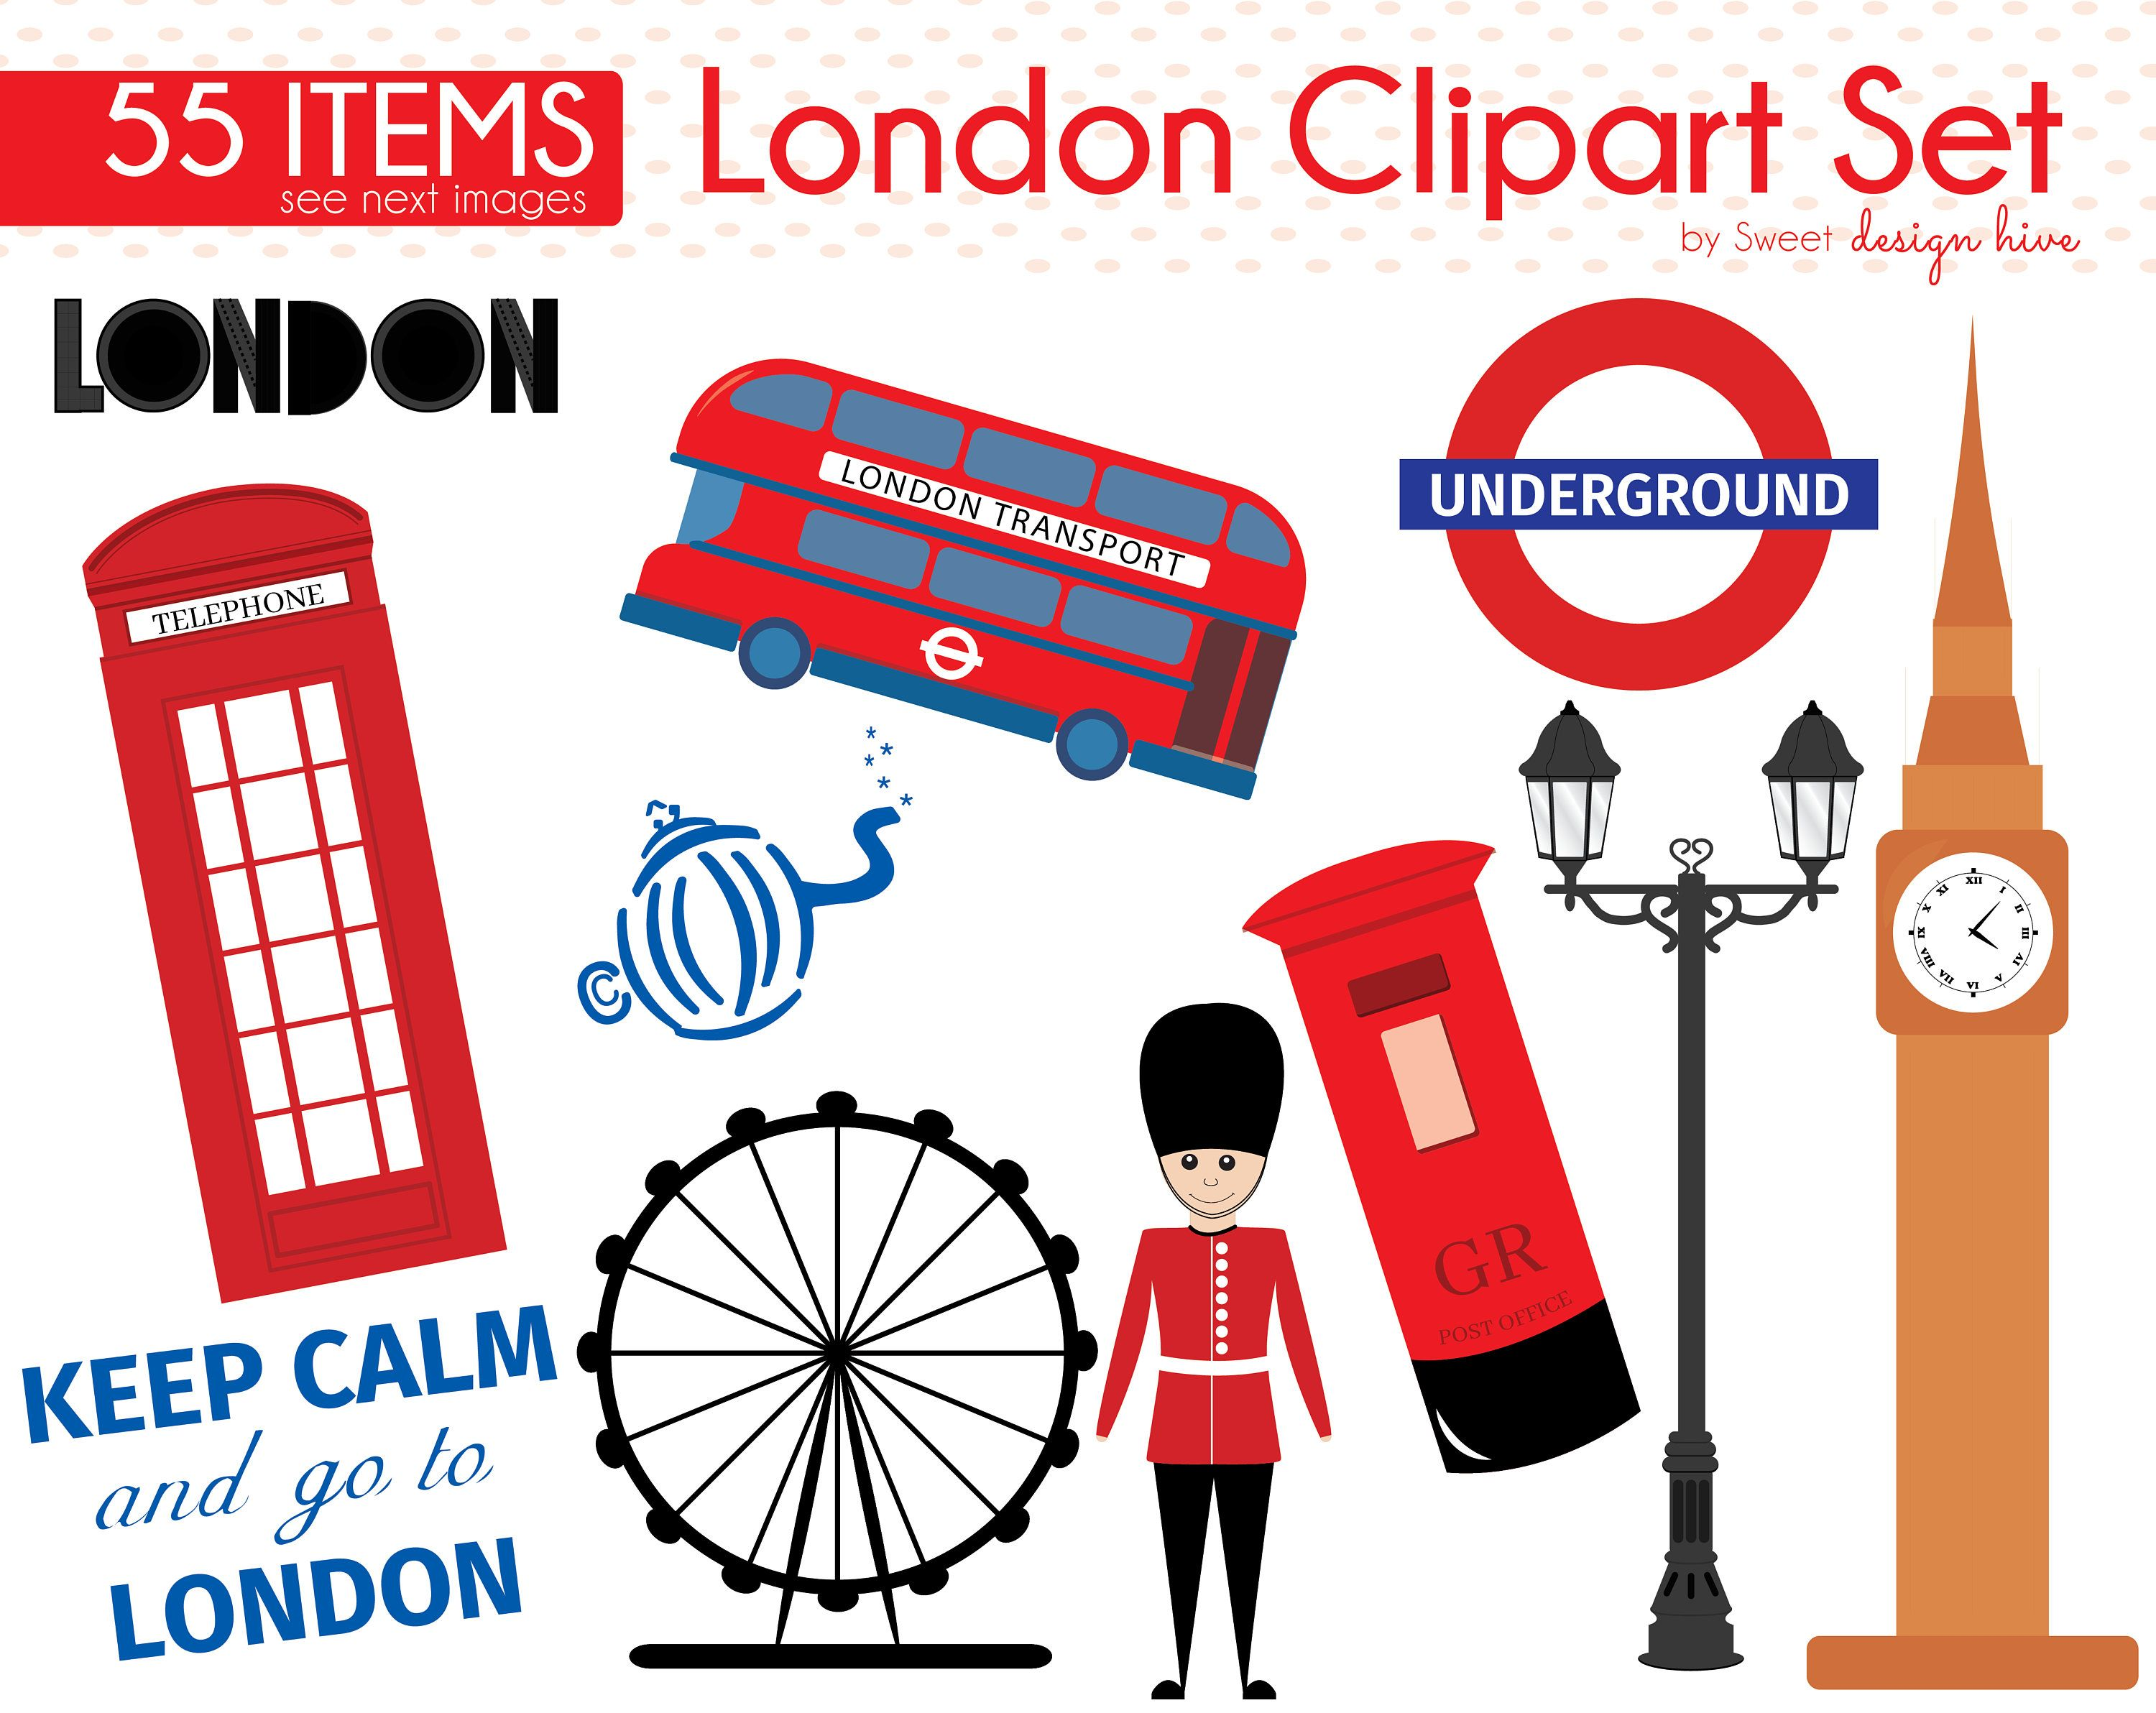 London Clipart, Telephone Booth Clipart, Queen\'s Guard.